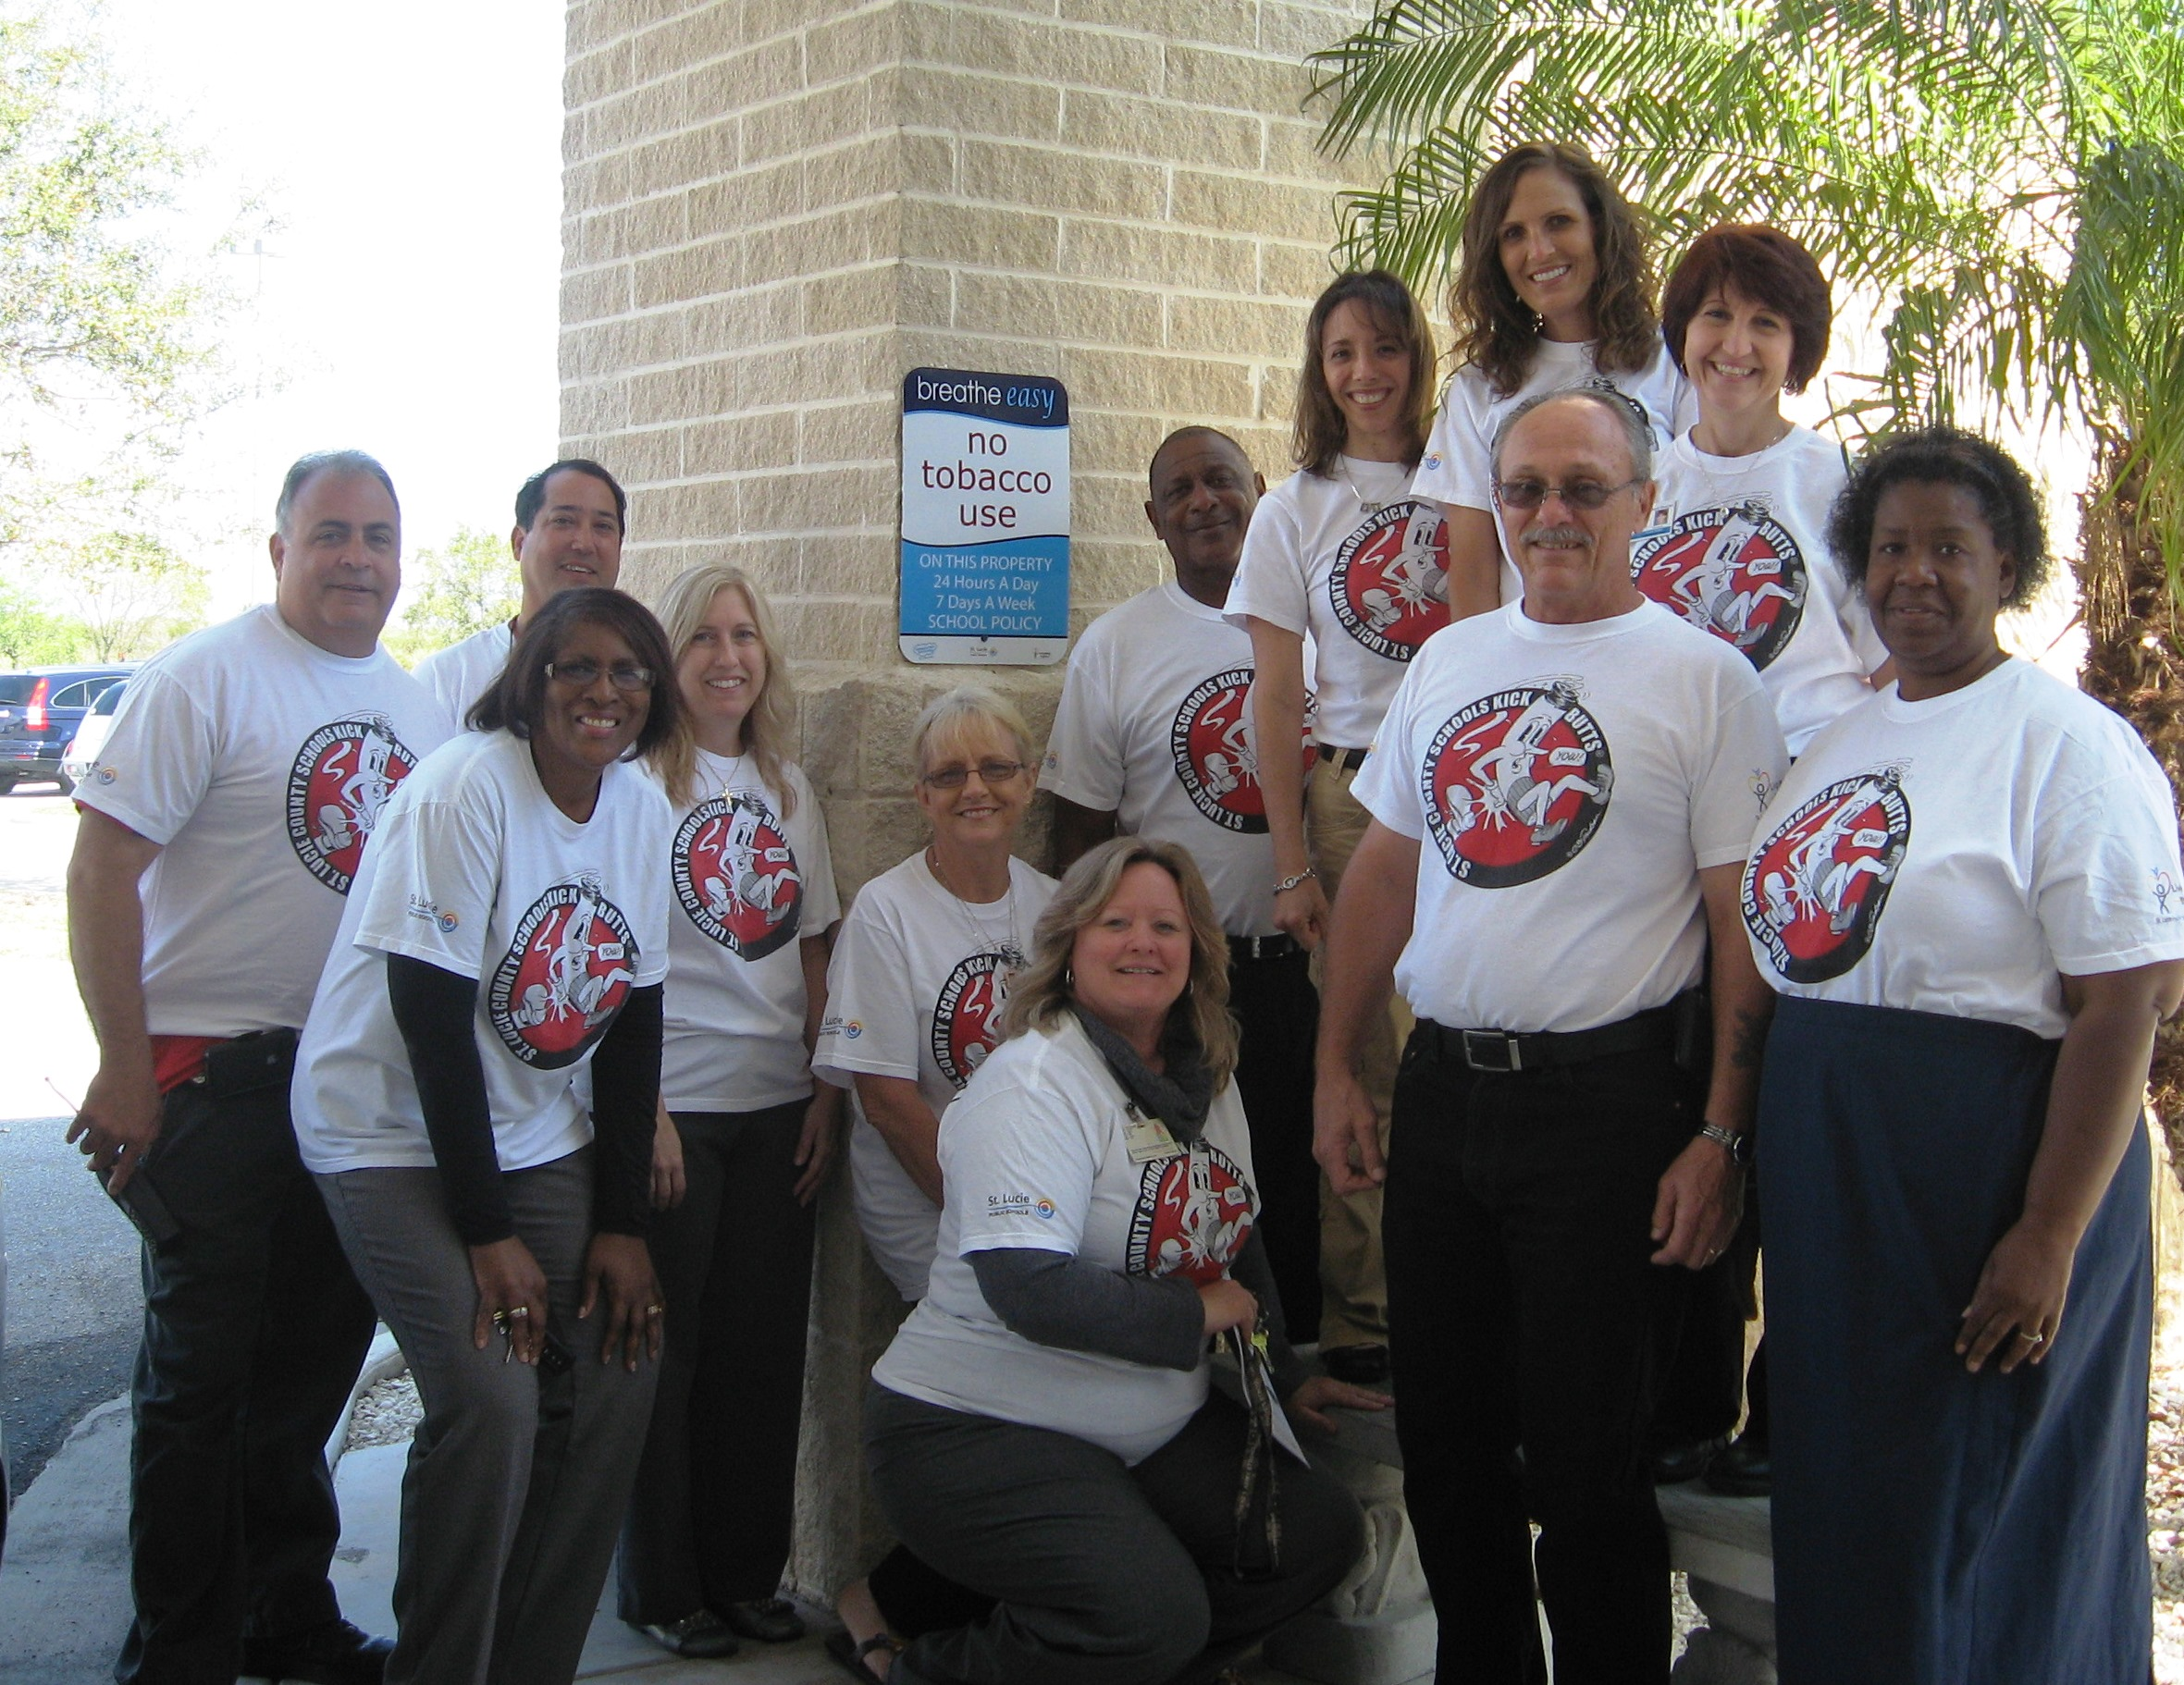 School district supports tobacco free activities